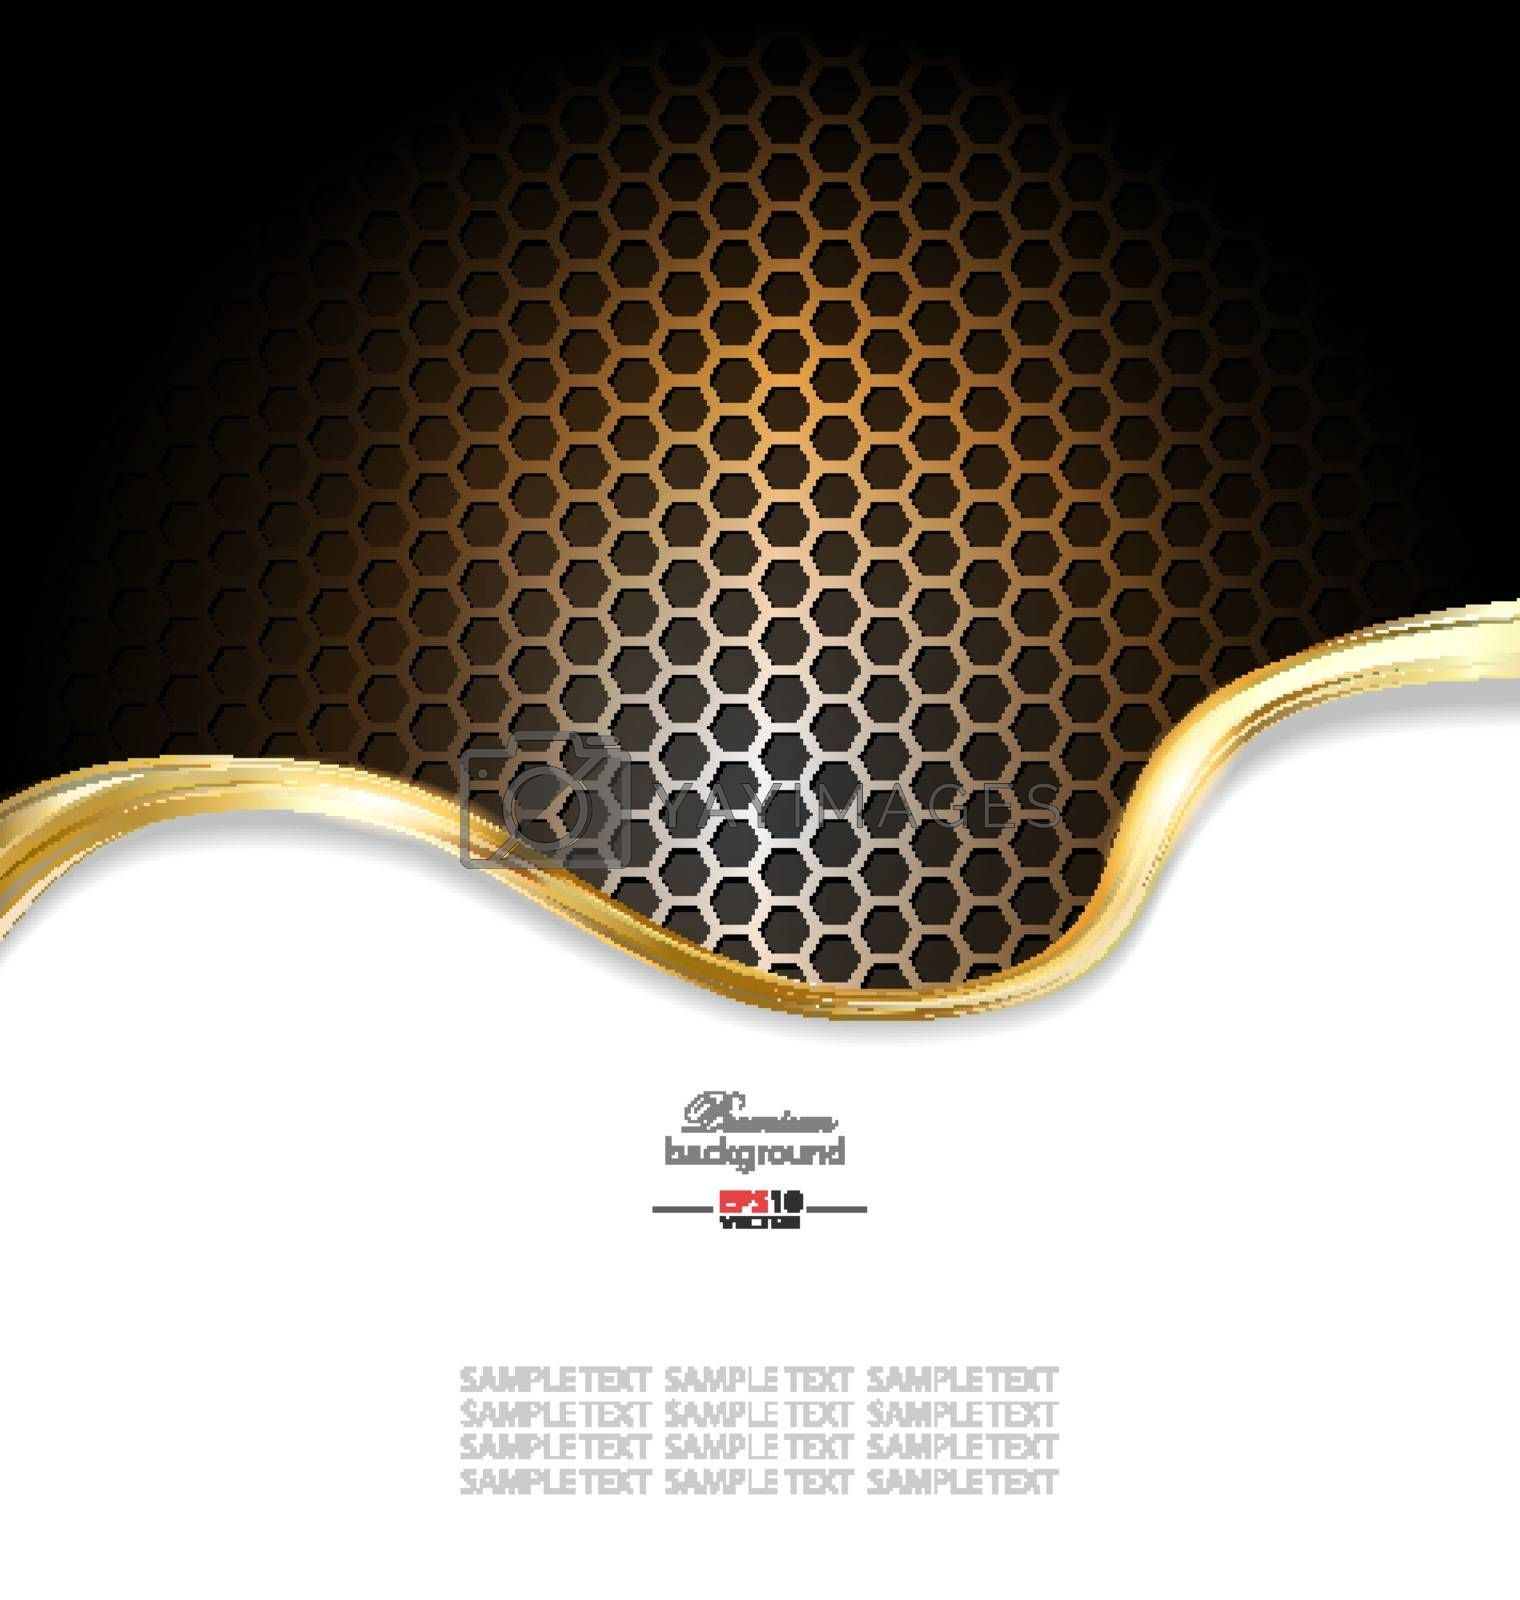 Abstract gold metallic background for creative design needs